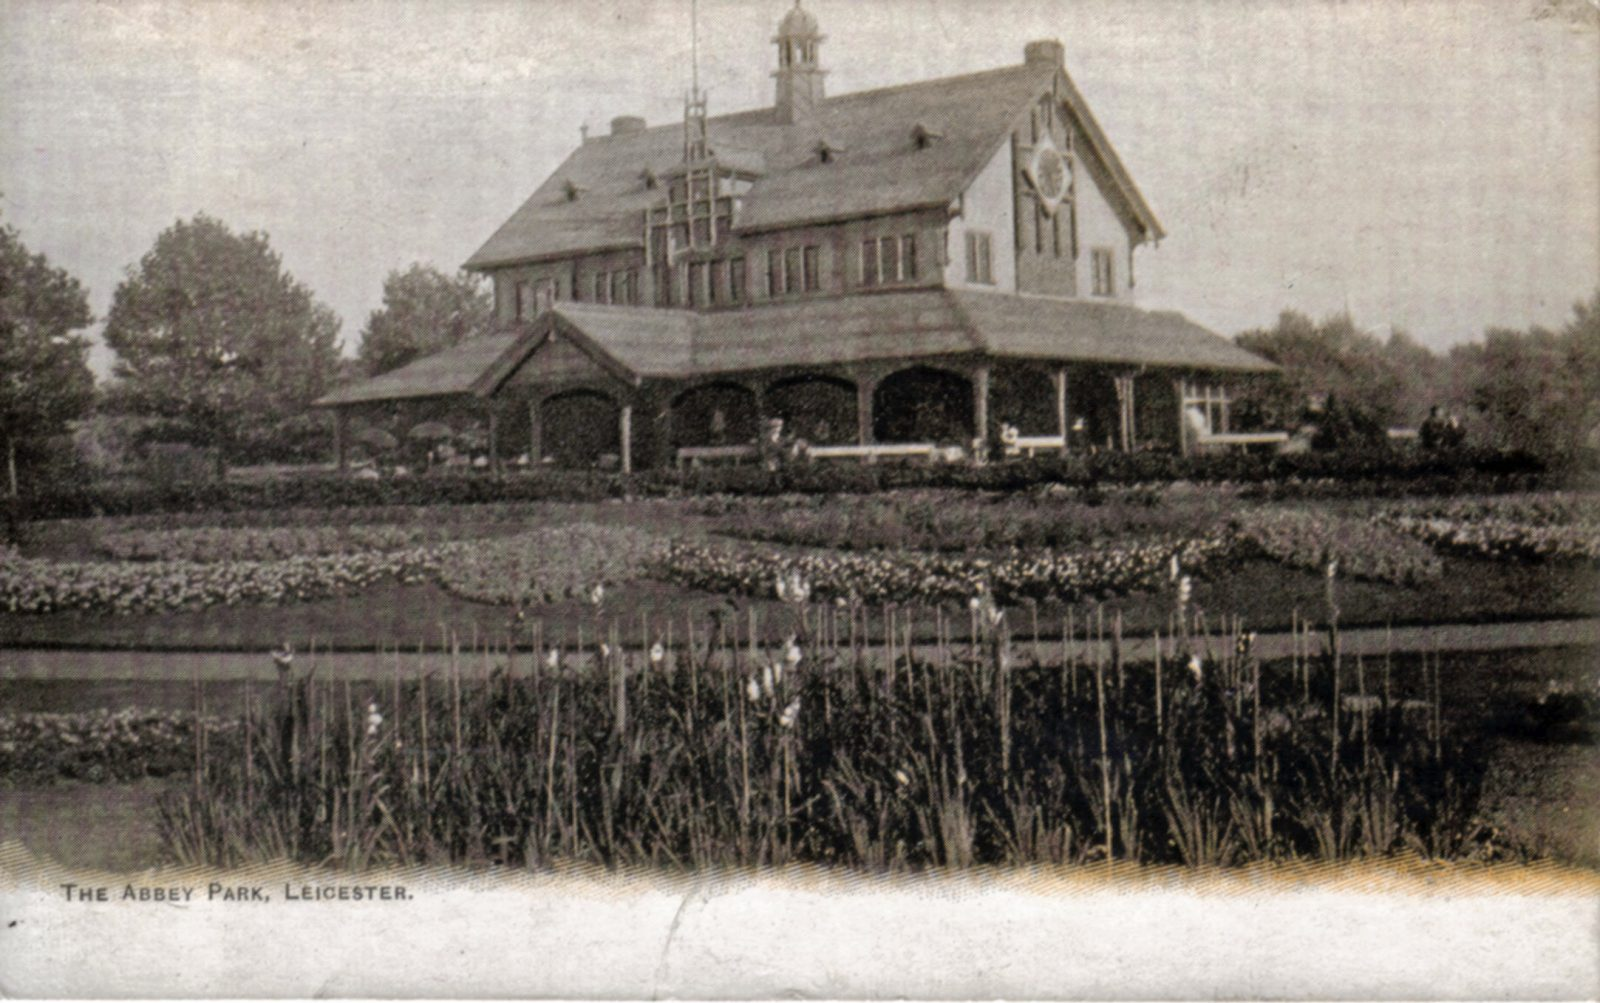 Abbey Park, Leicester. 1901-1920: The Pavilion and formal bedding. (File:1265)